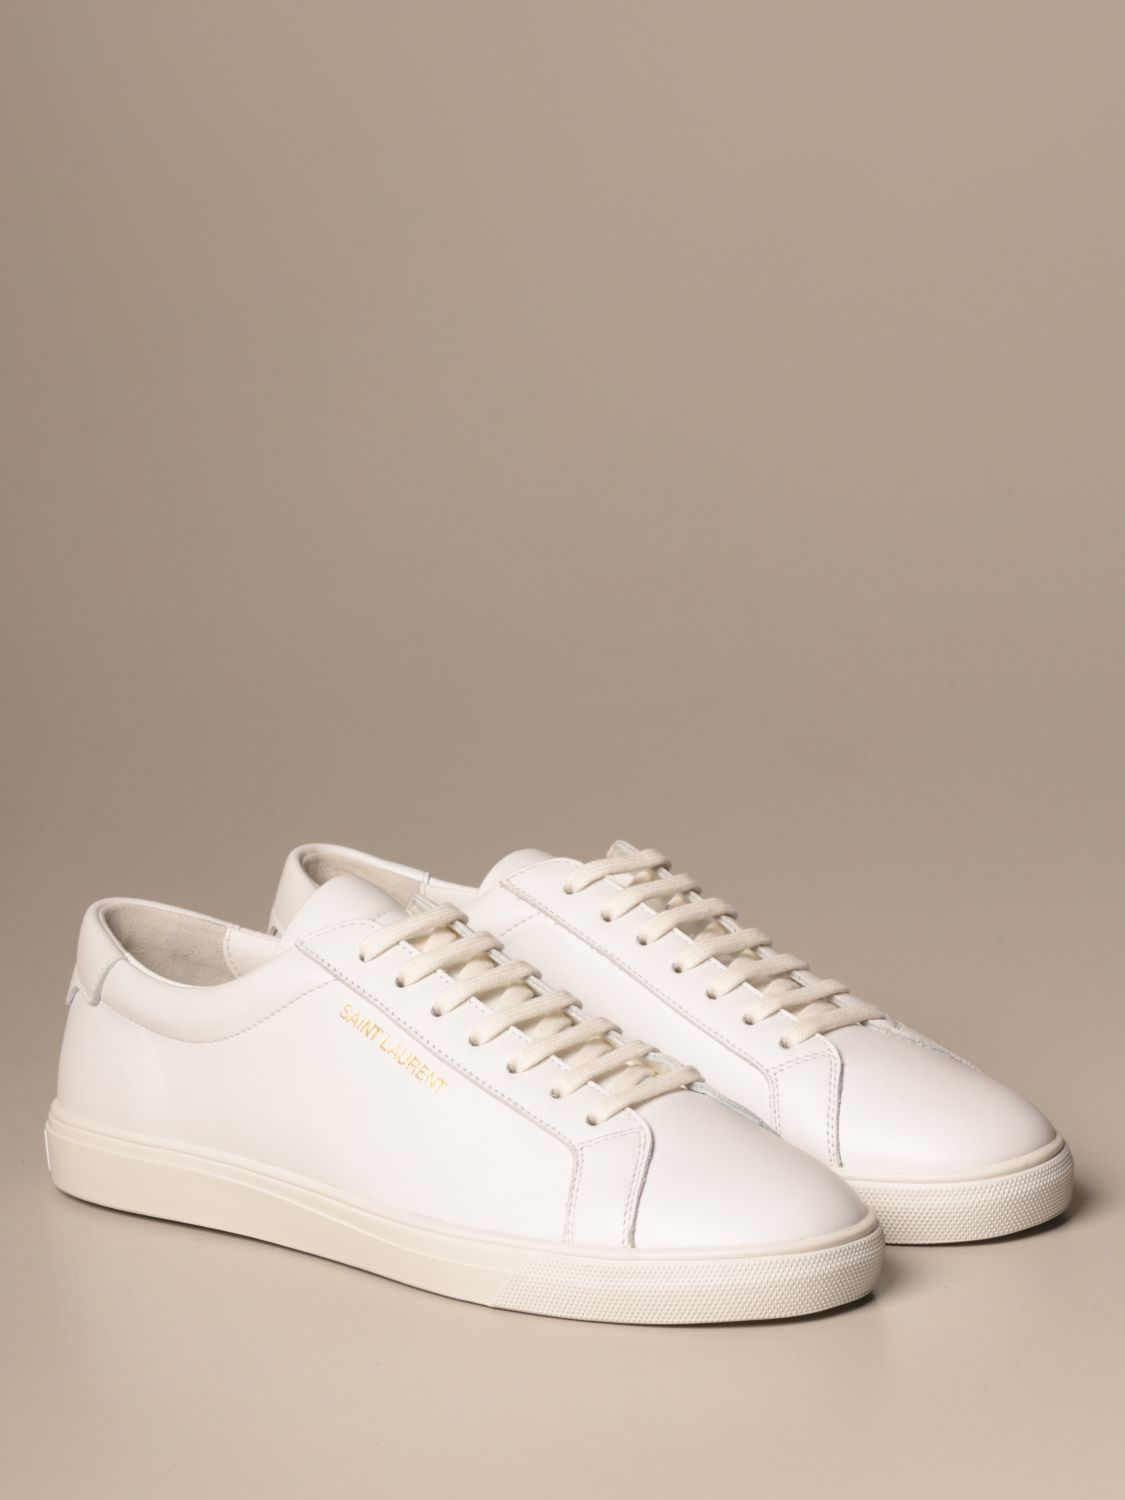 Trainers Saint Laurent: Shoes men Saint Laurent white 2